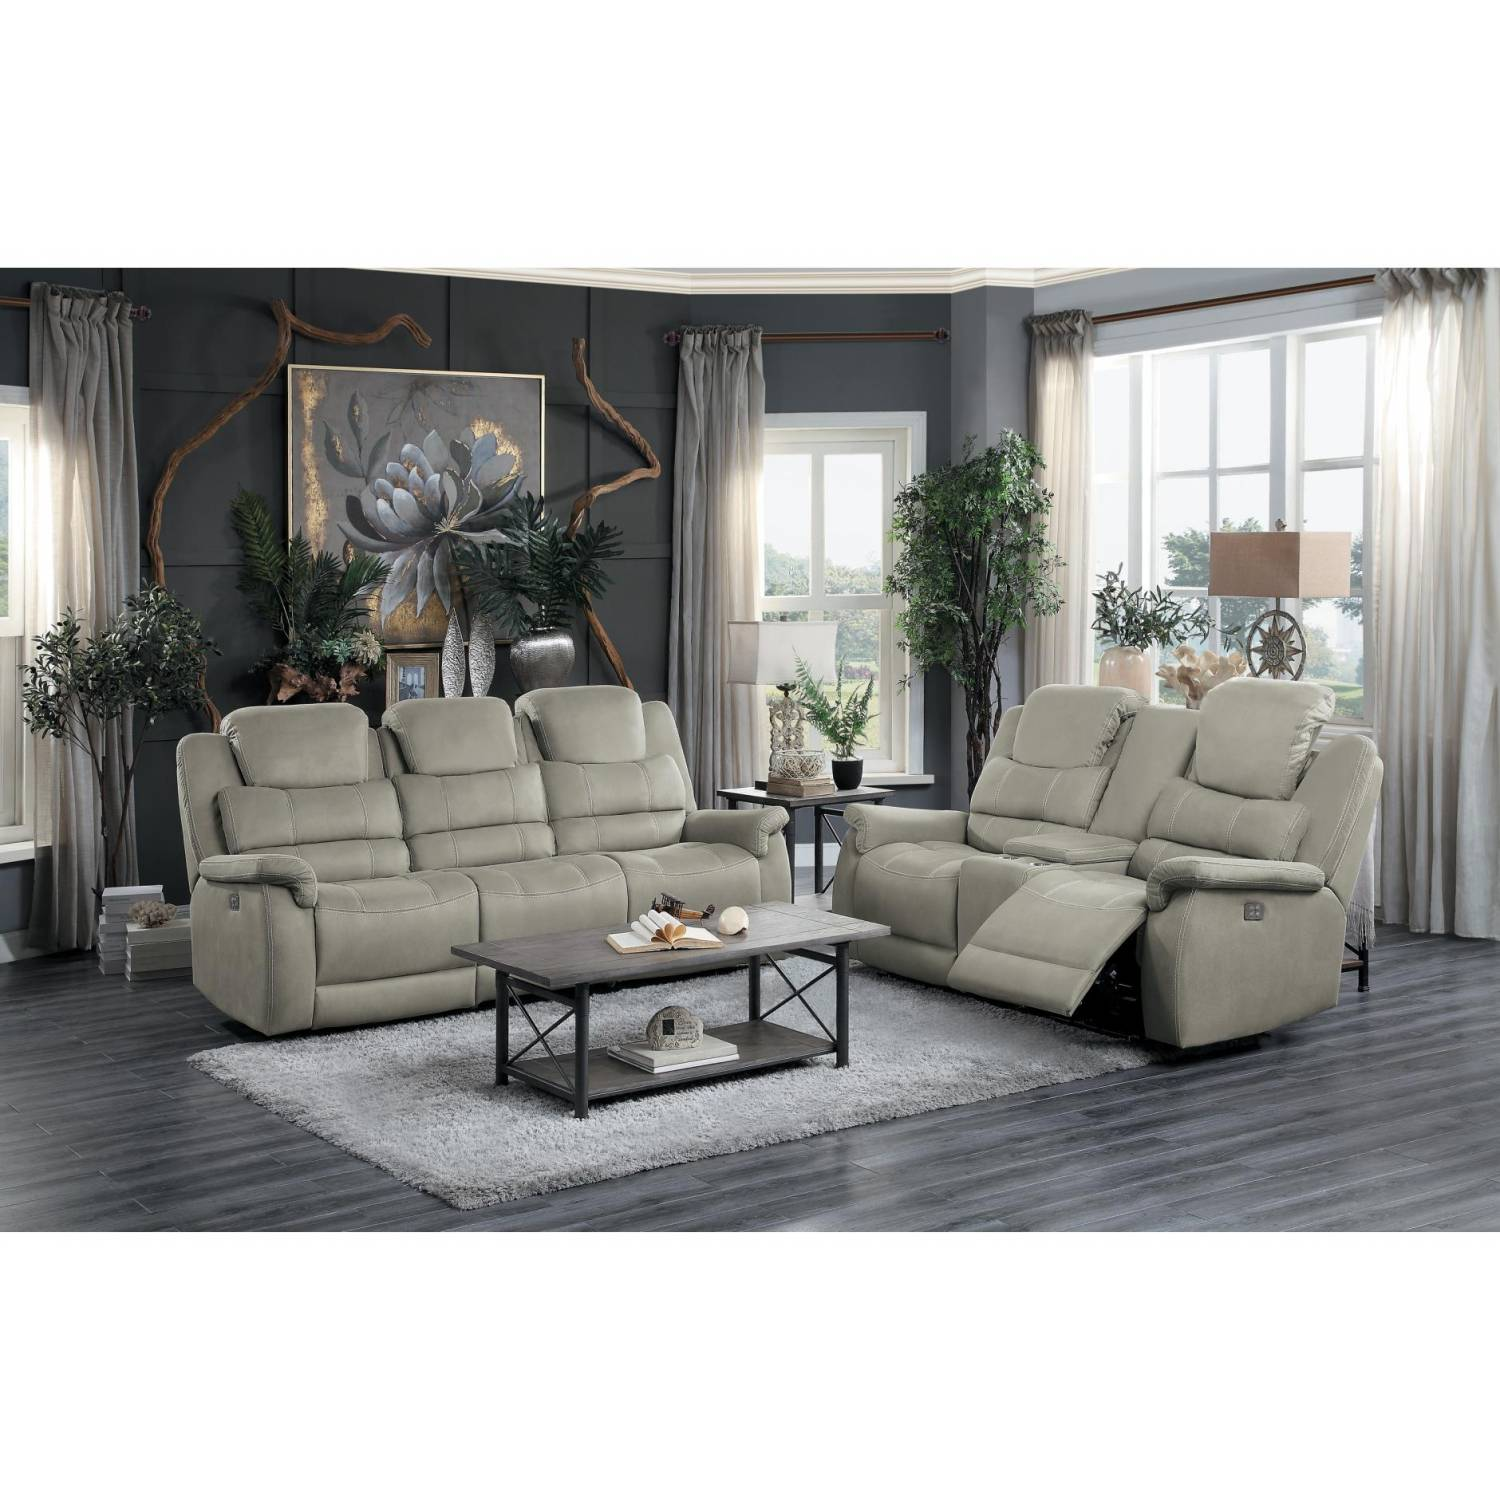 Picture of: 9848gy 2 3 Double Reclining Sofa And Love Seat With Drop Down Cup Holders And Receptacles Shola